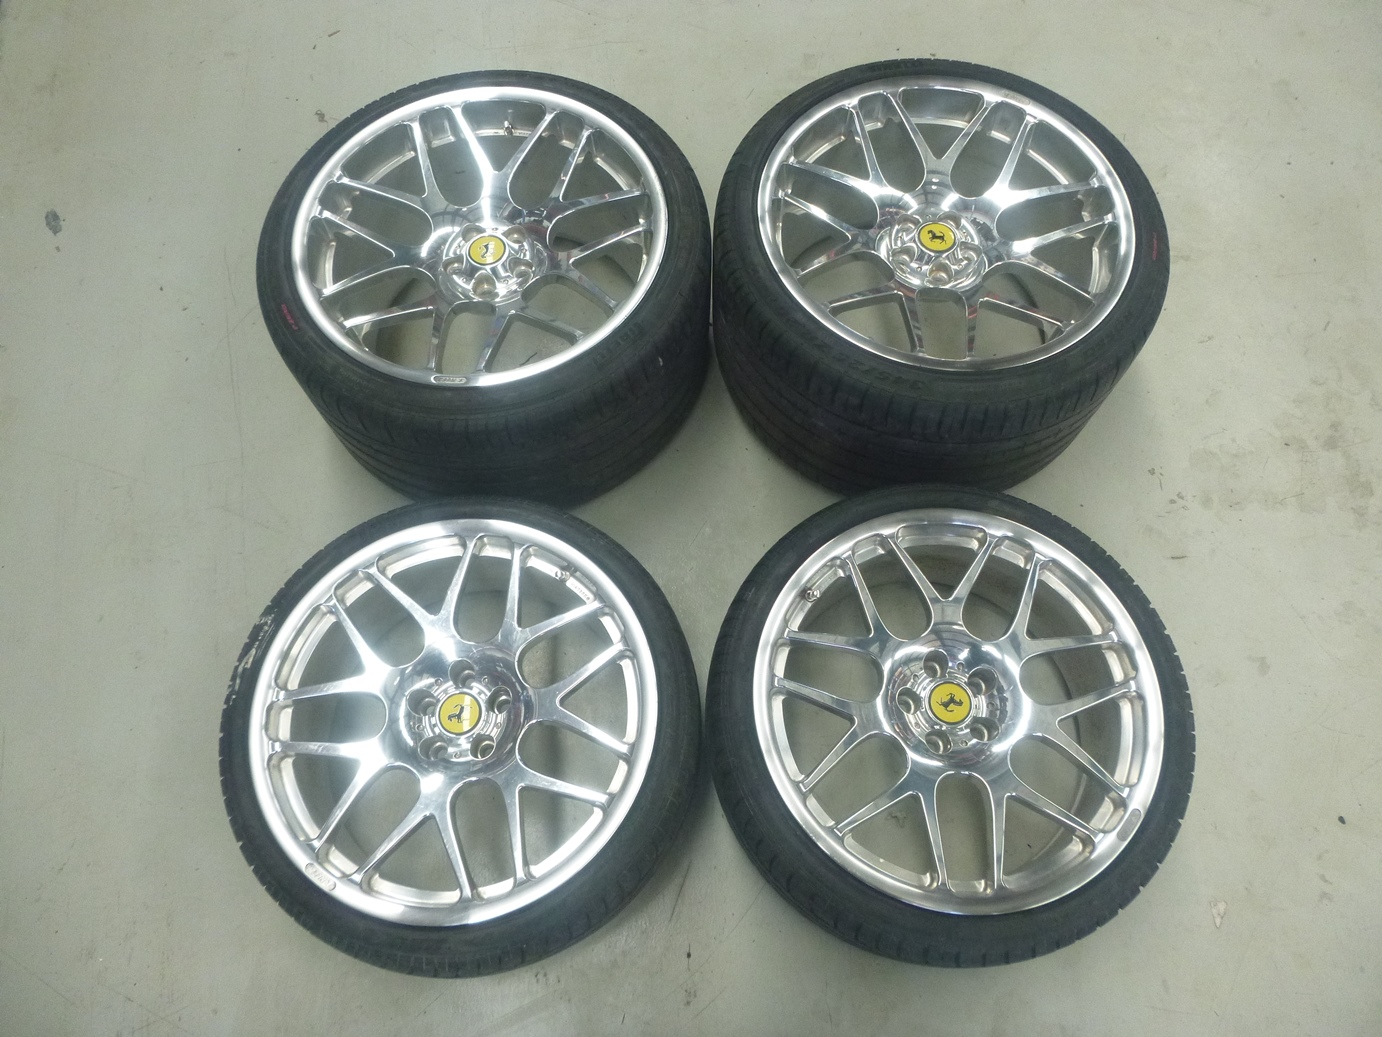 Ferrari-360-430-NEEZ-Forged-Alloy-Wheels-Rims-20-x-12-5-19-x-8-5-J051